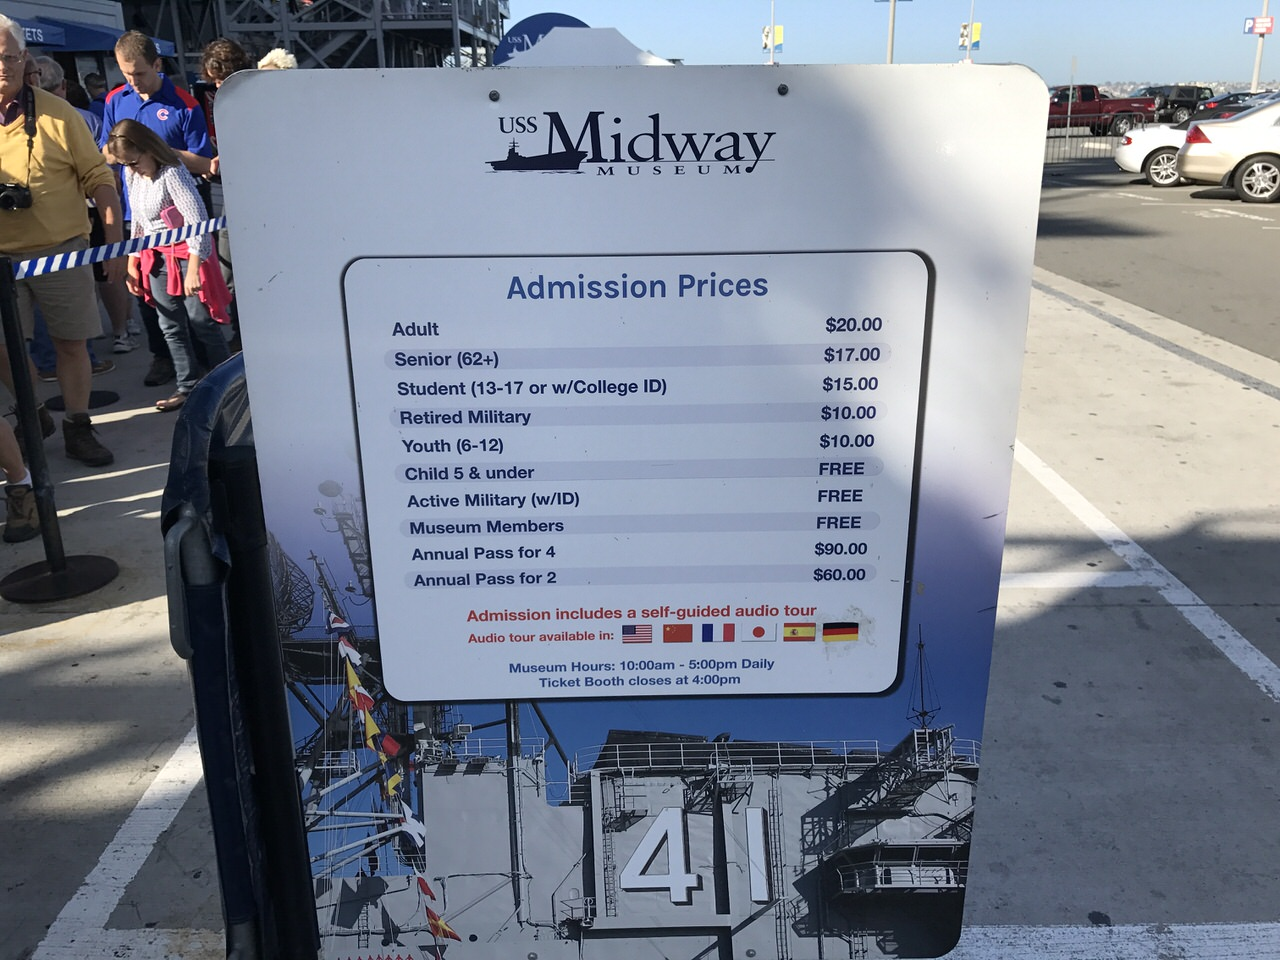 Uss midway museum 0554